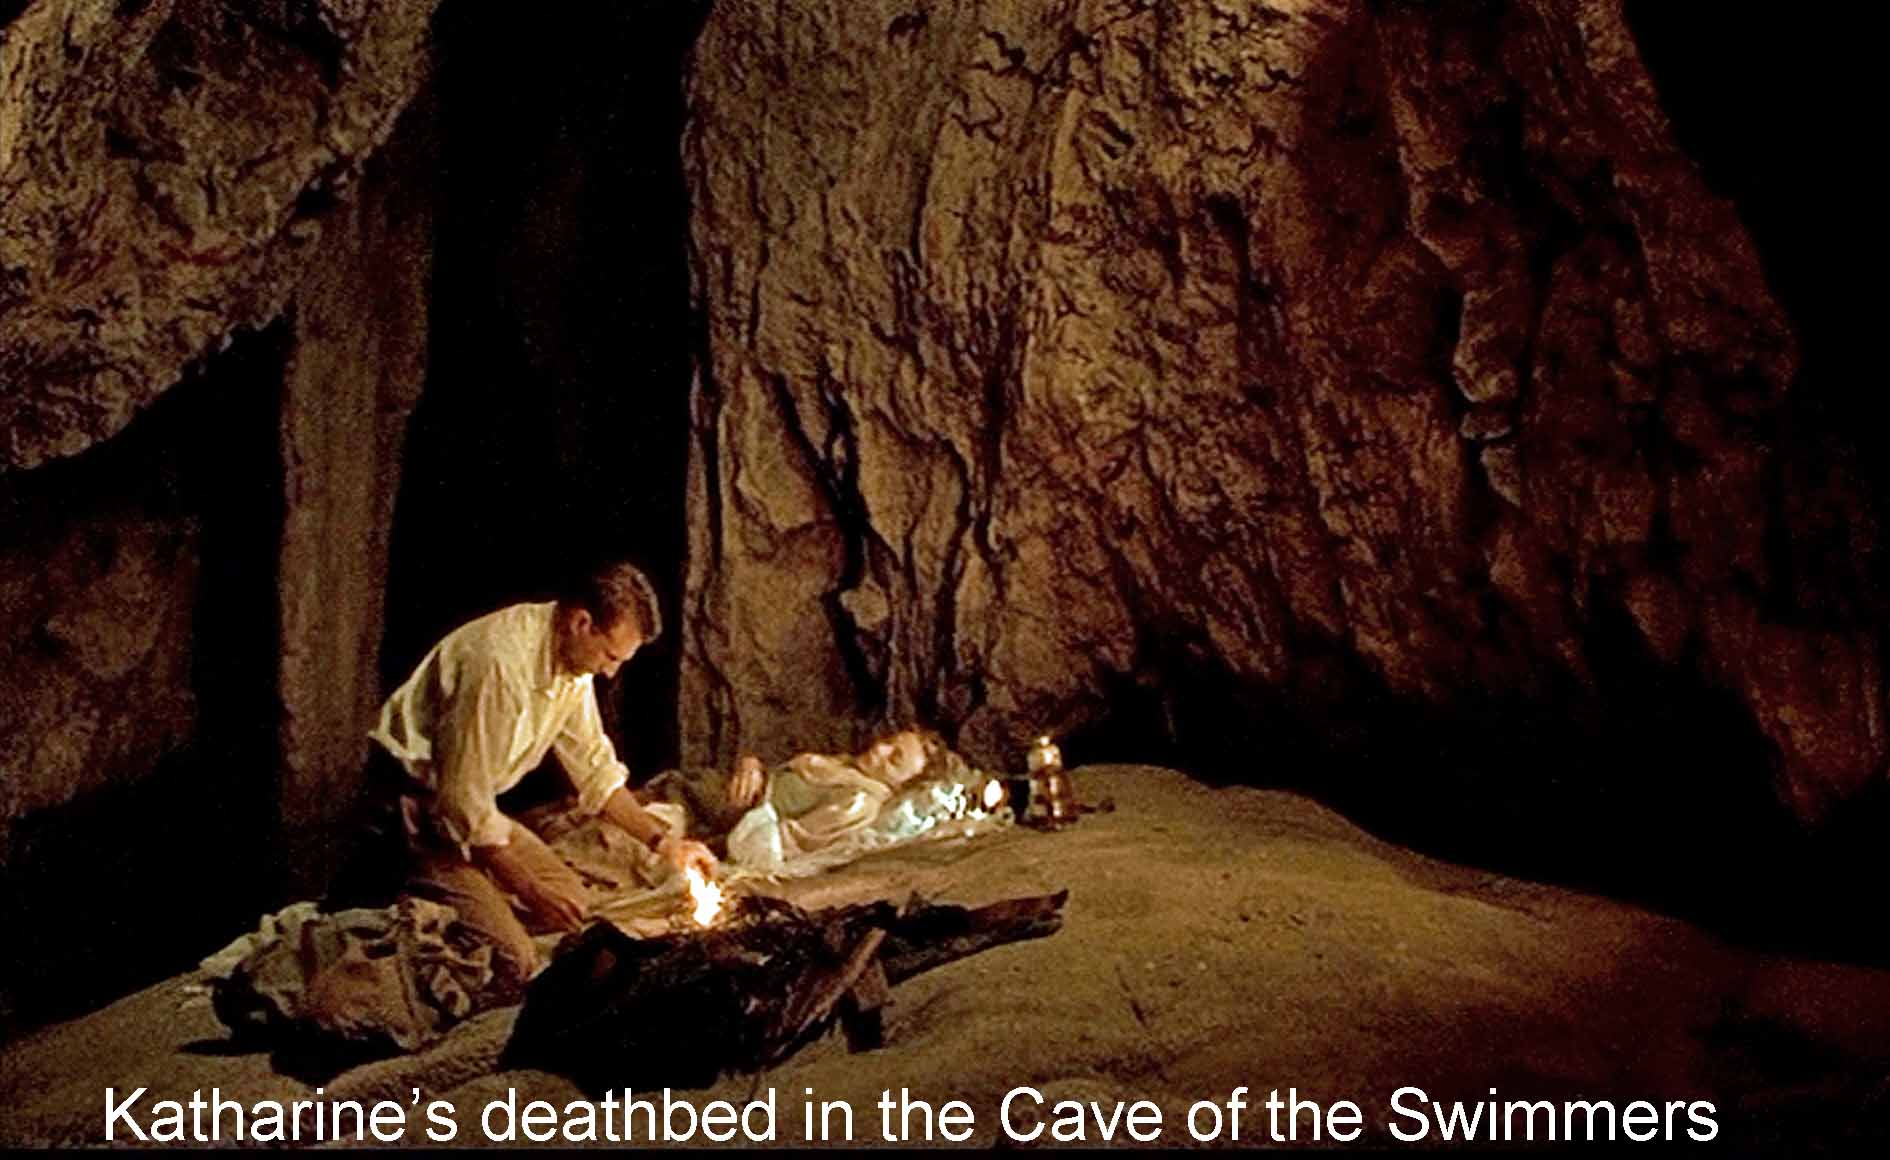 Katharine's deathbed in the Cave of the Swimmers